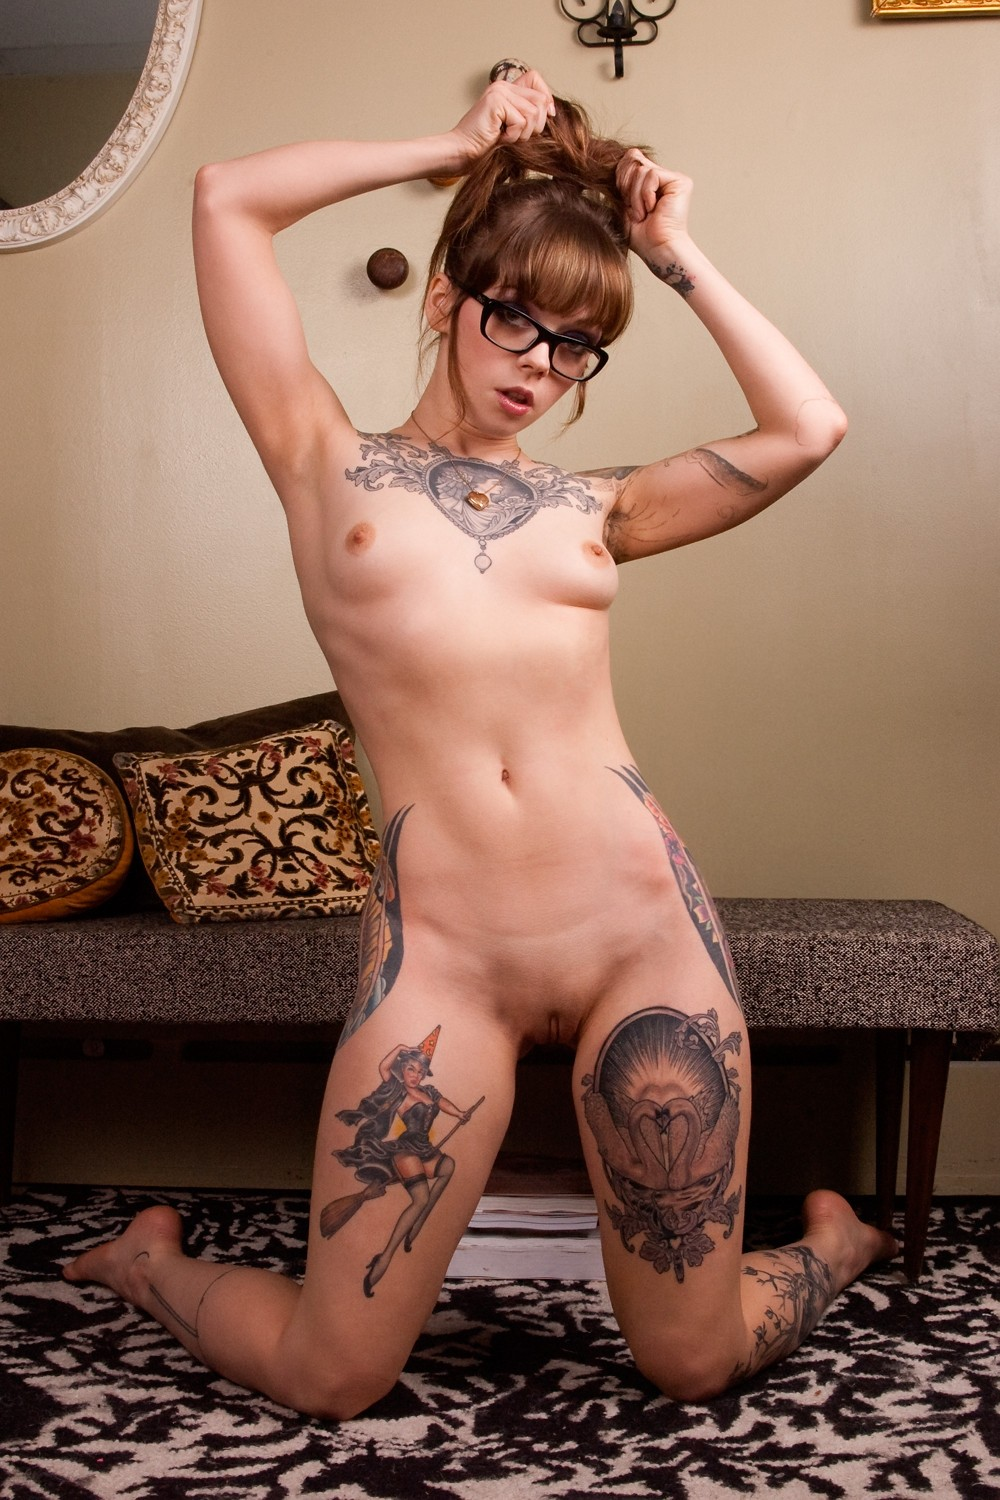 Nude amatuer women with tattoos — img 13